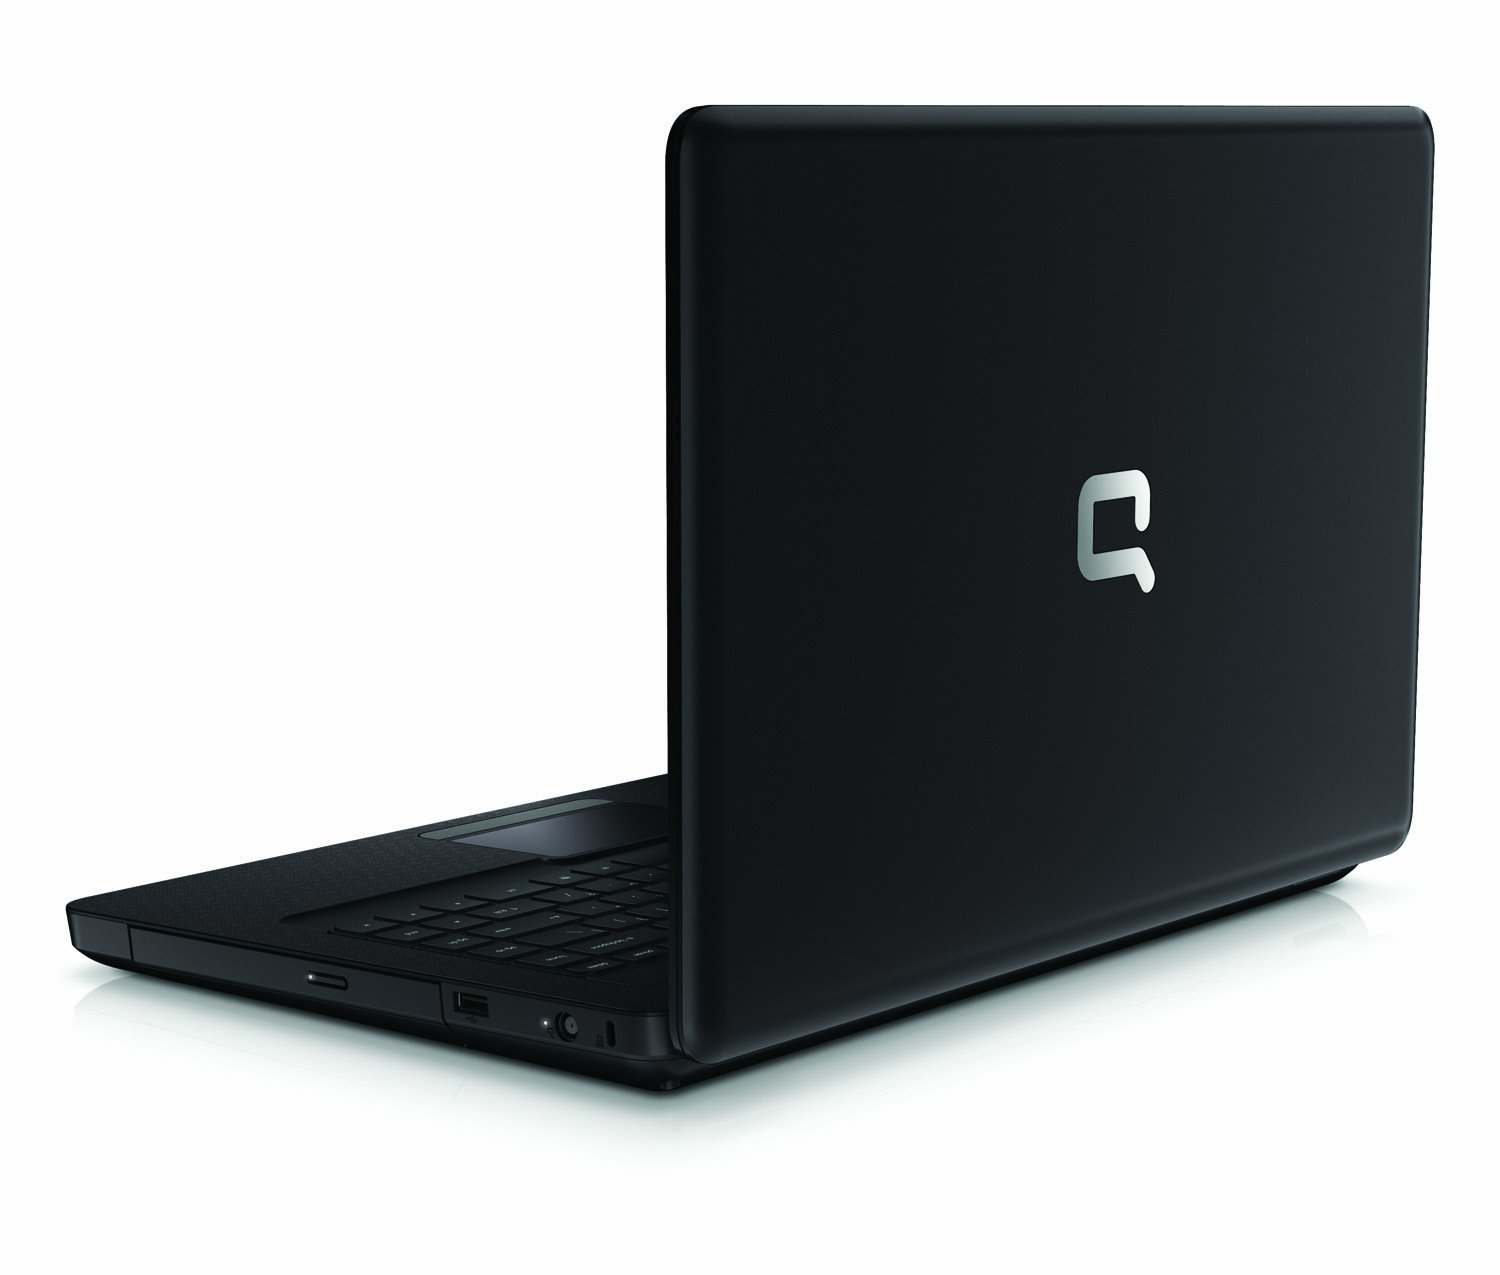 Amazon.com: Compaq Presario CQ56-110US 15.6-Inch Laptop PC - Up to 4.15  Hours of Battery Life (Black): Computers & Accessories